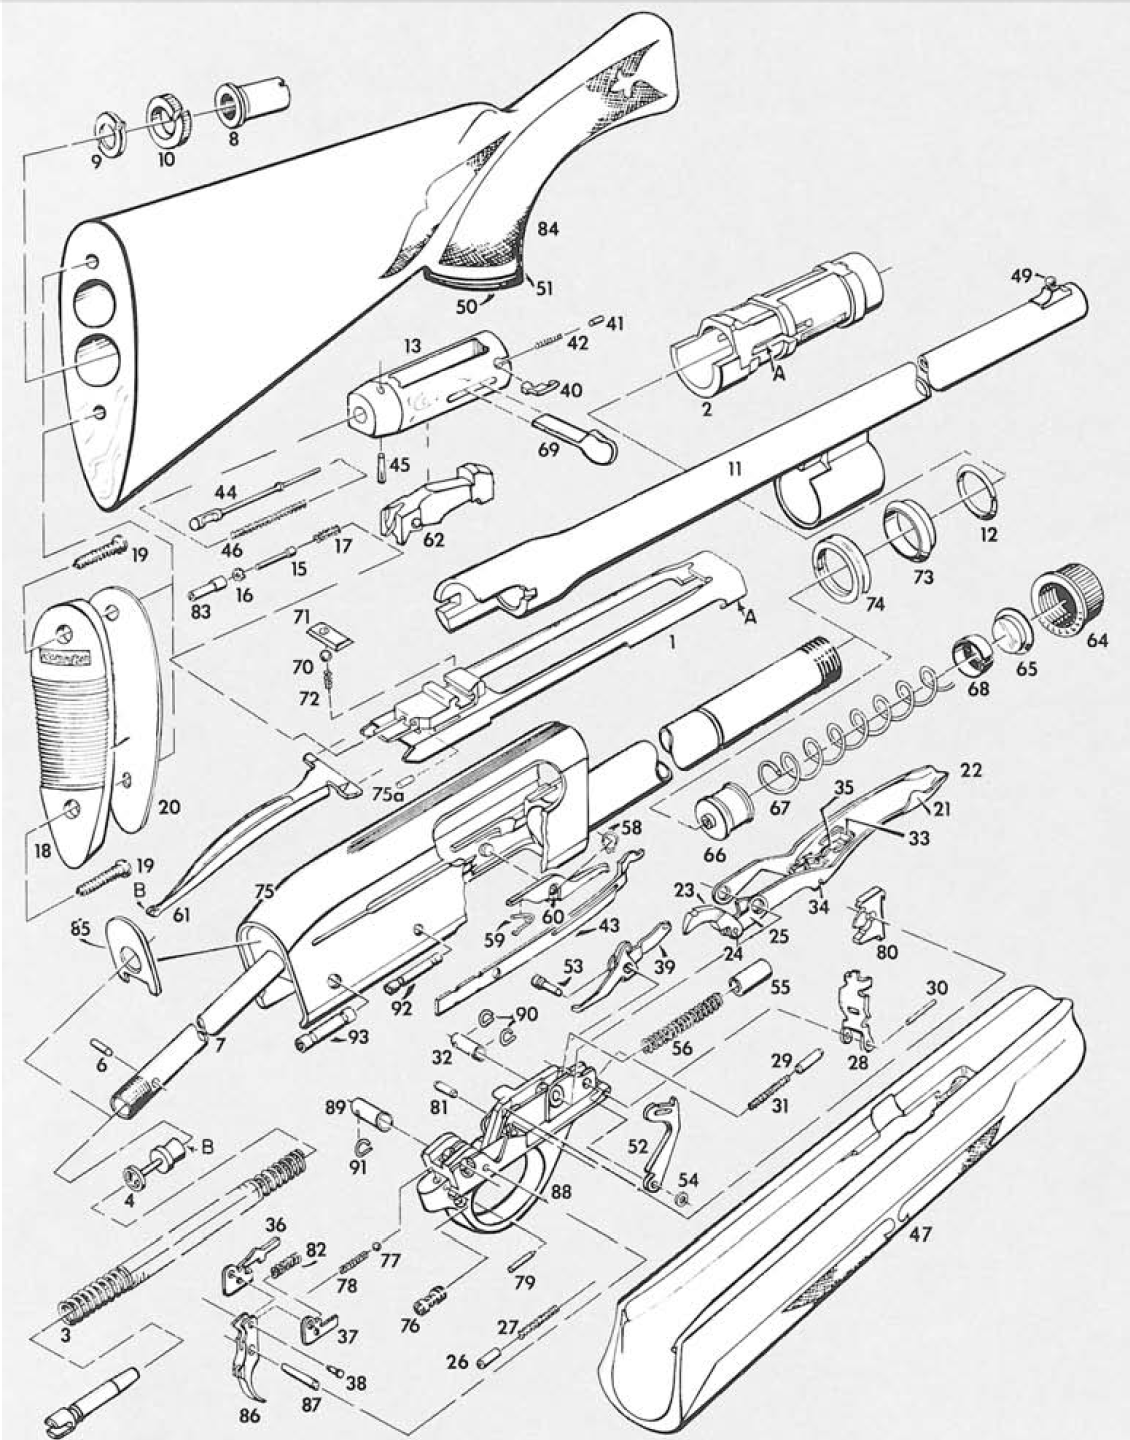 Remington 11 48 Parts Diagram